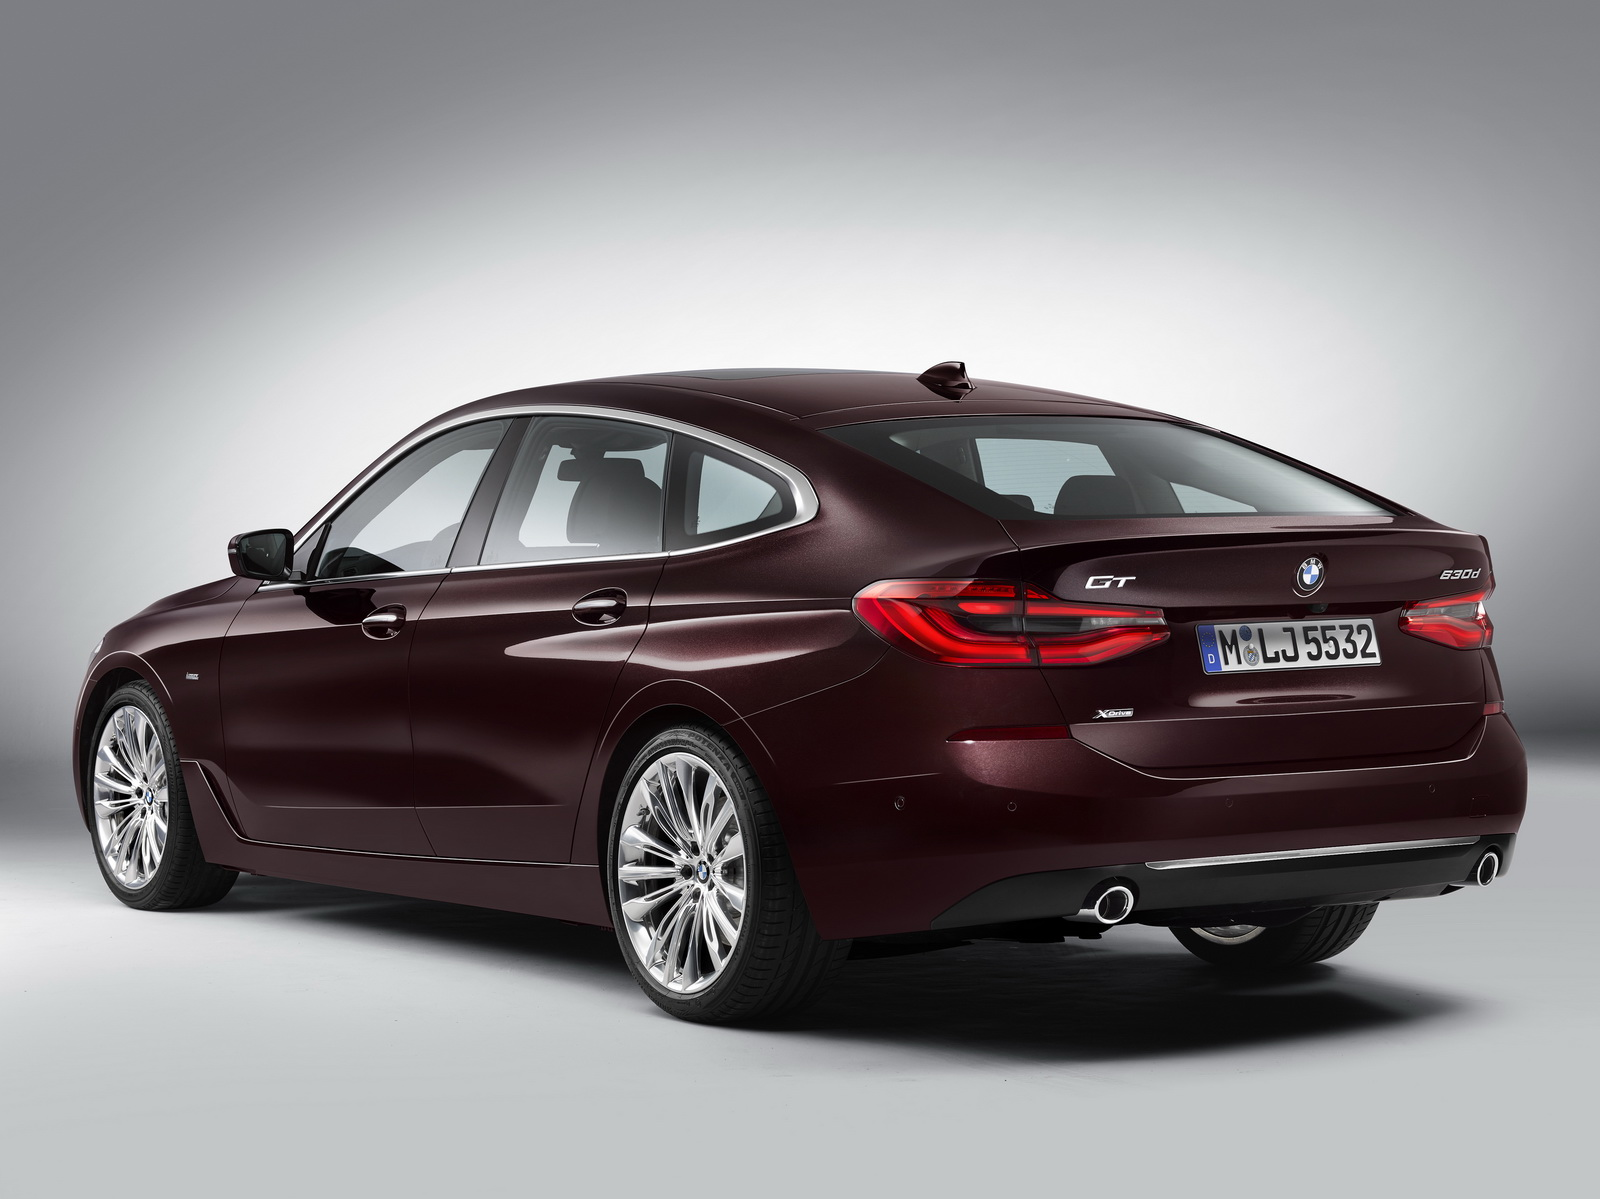 New Bmw 6series Gt Official Photos Now 50% Prettier